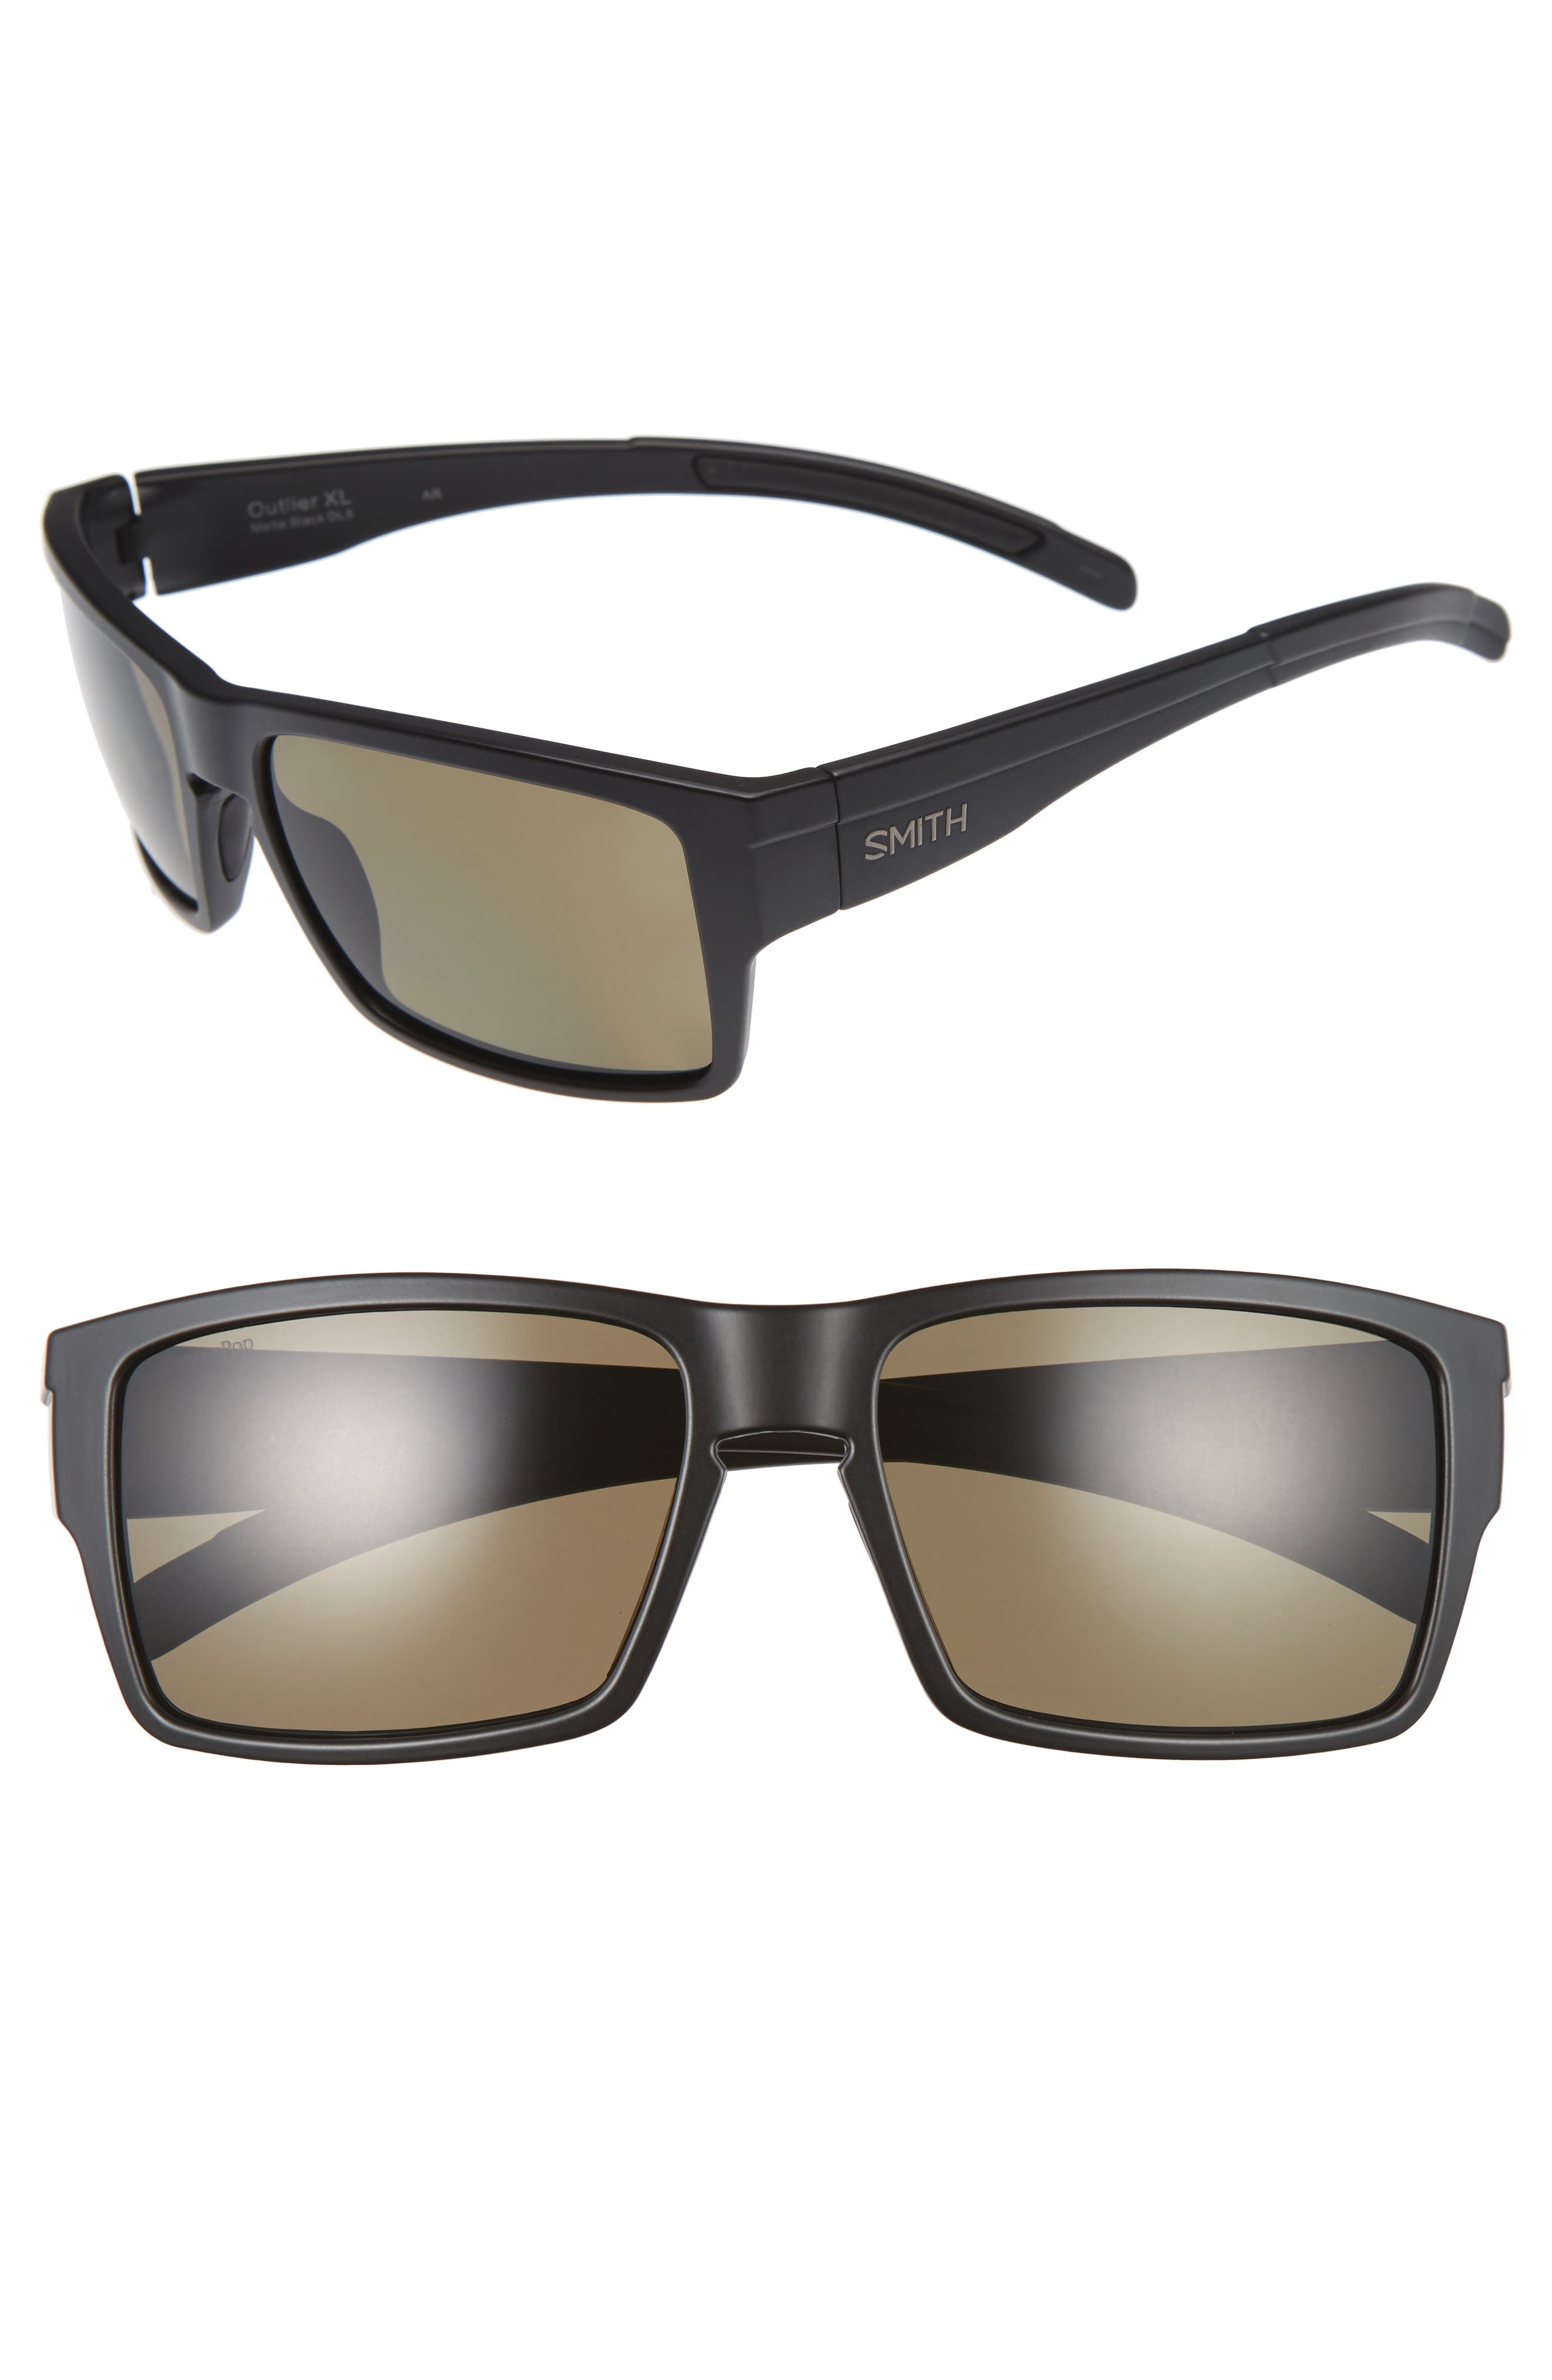 Outlier XL 58mm Polarized Sunglasses,                             Main thumbnail 1, color,                             001